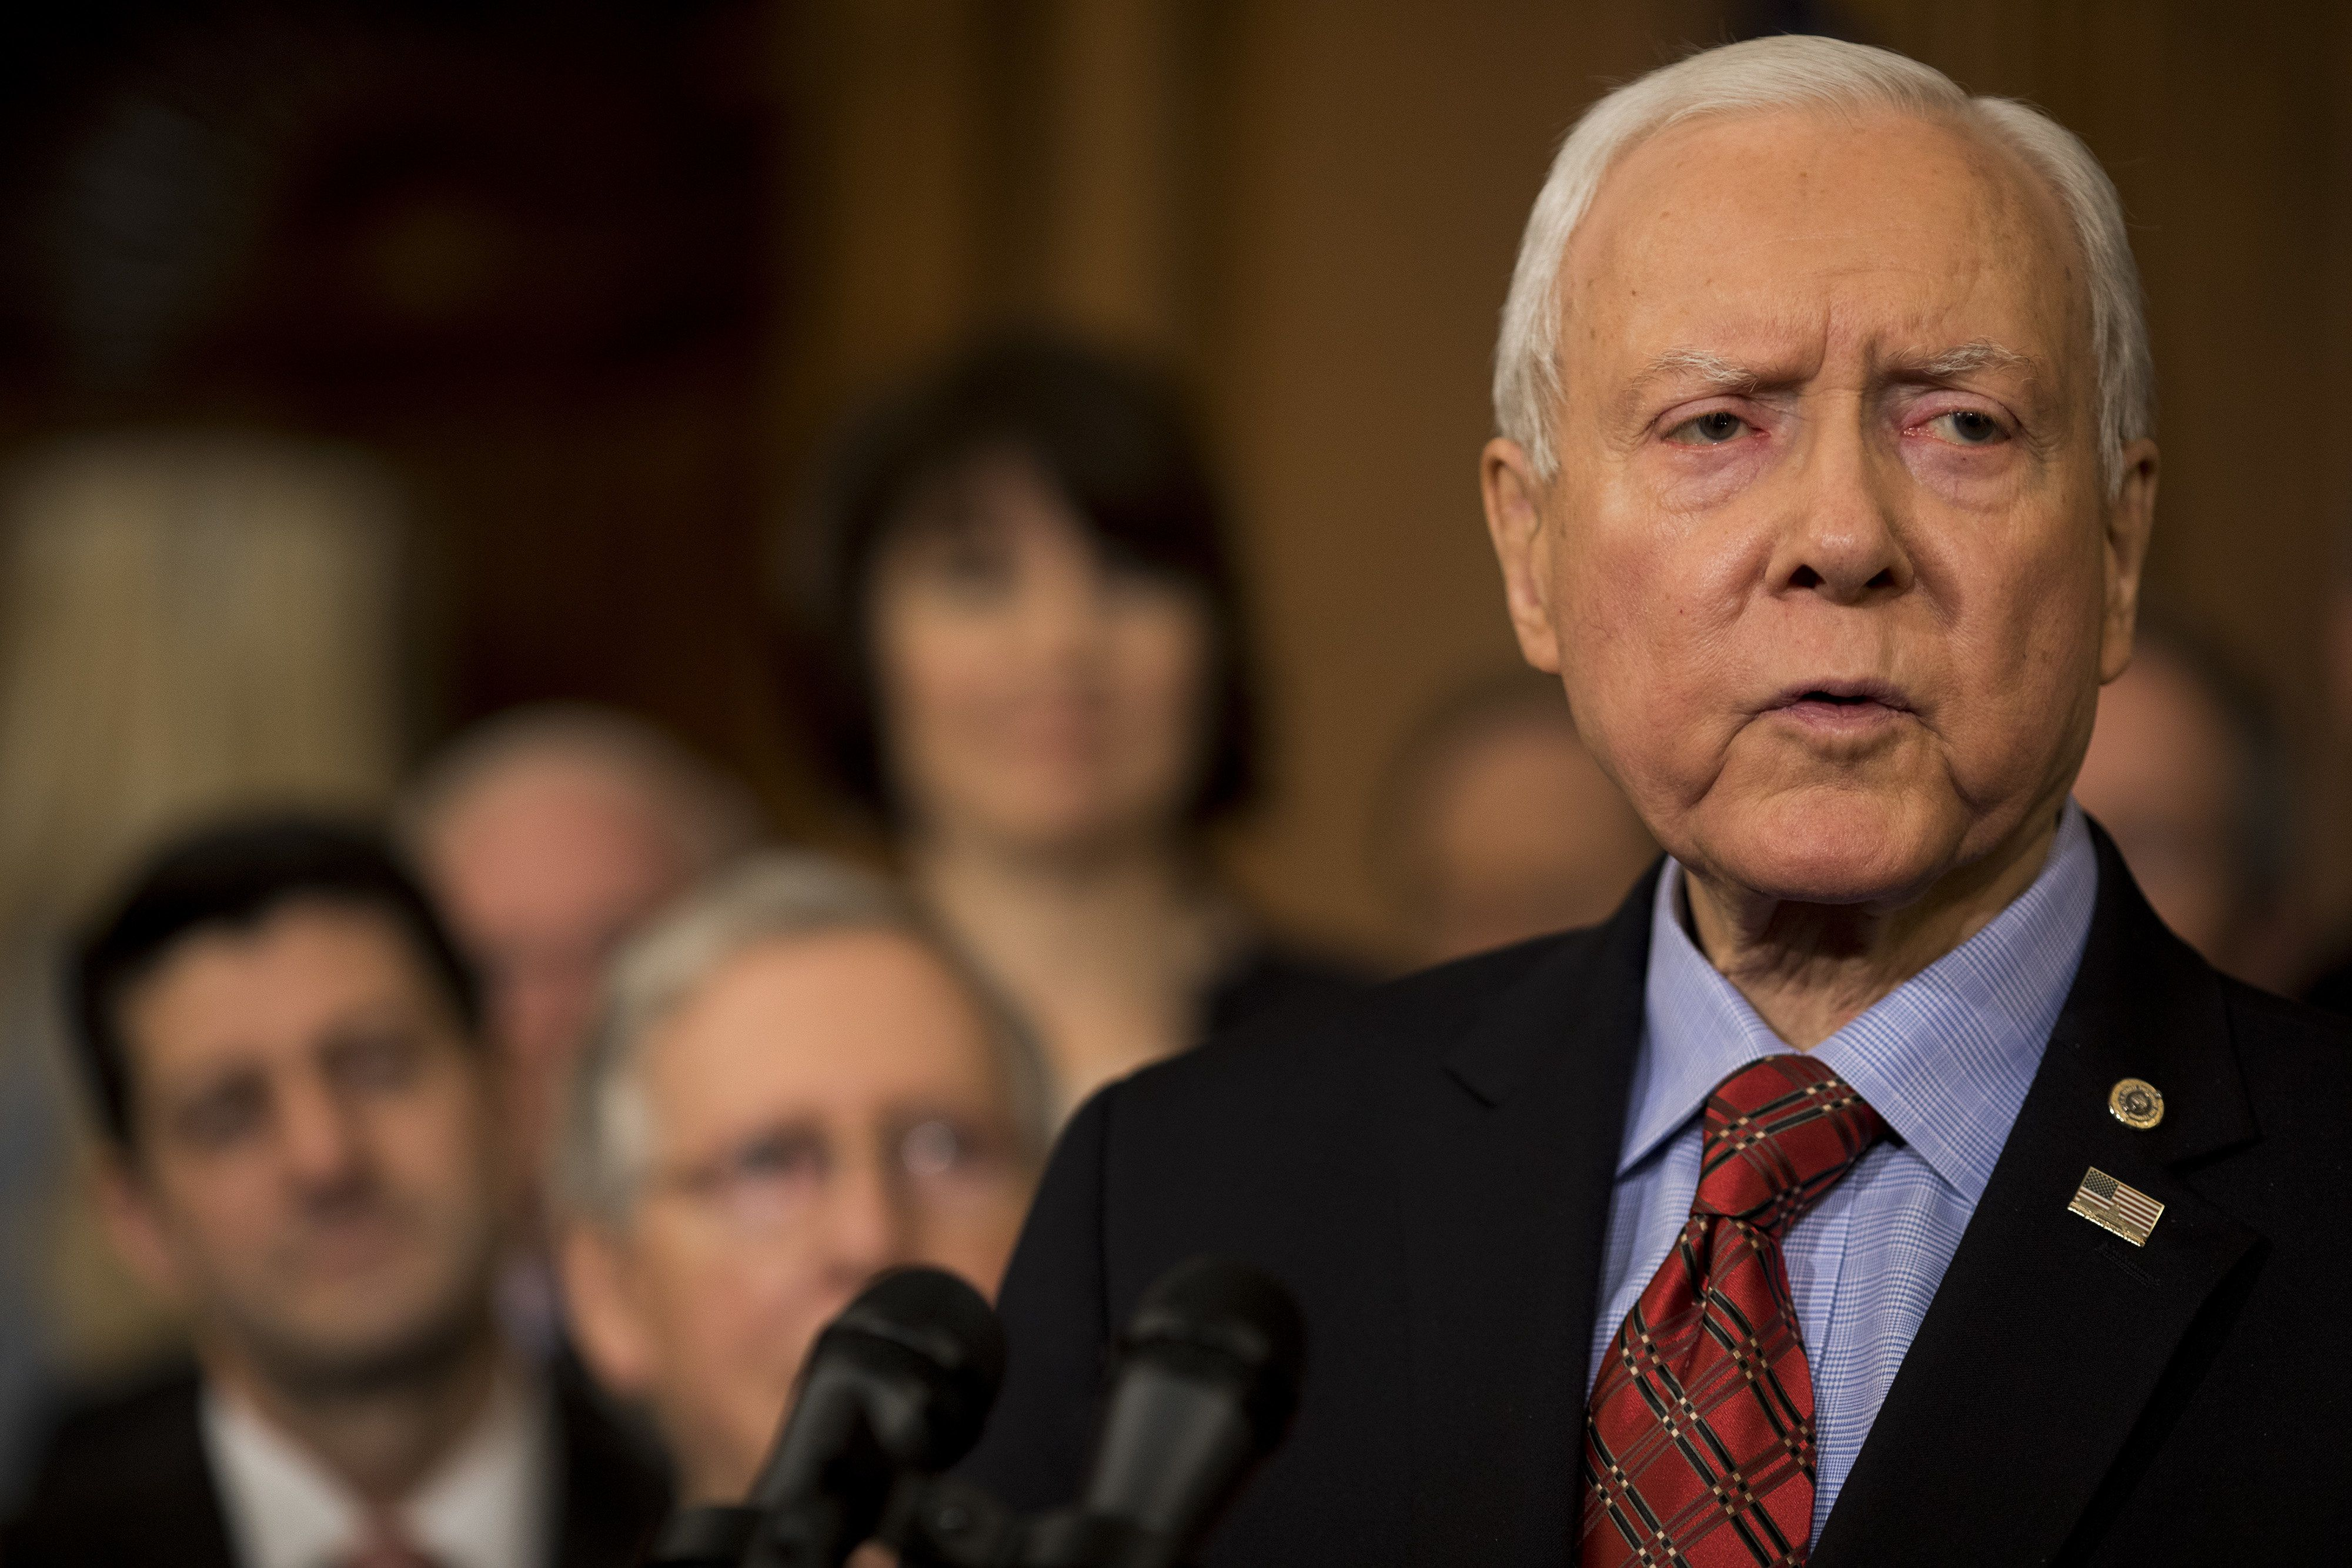 Senator Orrin Hatch, a Republican from Utah, speaks during a Tax Cuts and Jobs Act enrollment ceremony at the U.S. Capitol in Washington, D.C., U.S., on Thursday, Dec. 21, 2017. Republicans want to channel momentum from the GOP's victory on taxes into a push to overhaul the nation's welfare programs, though some of President Donald Trump's advisers prefer a less controversial infrastructure plan at the top of his agenda. Photographer: Aaron P. Bernstein/Bloomberg via Getty Images